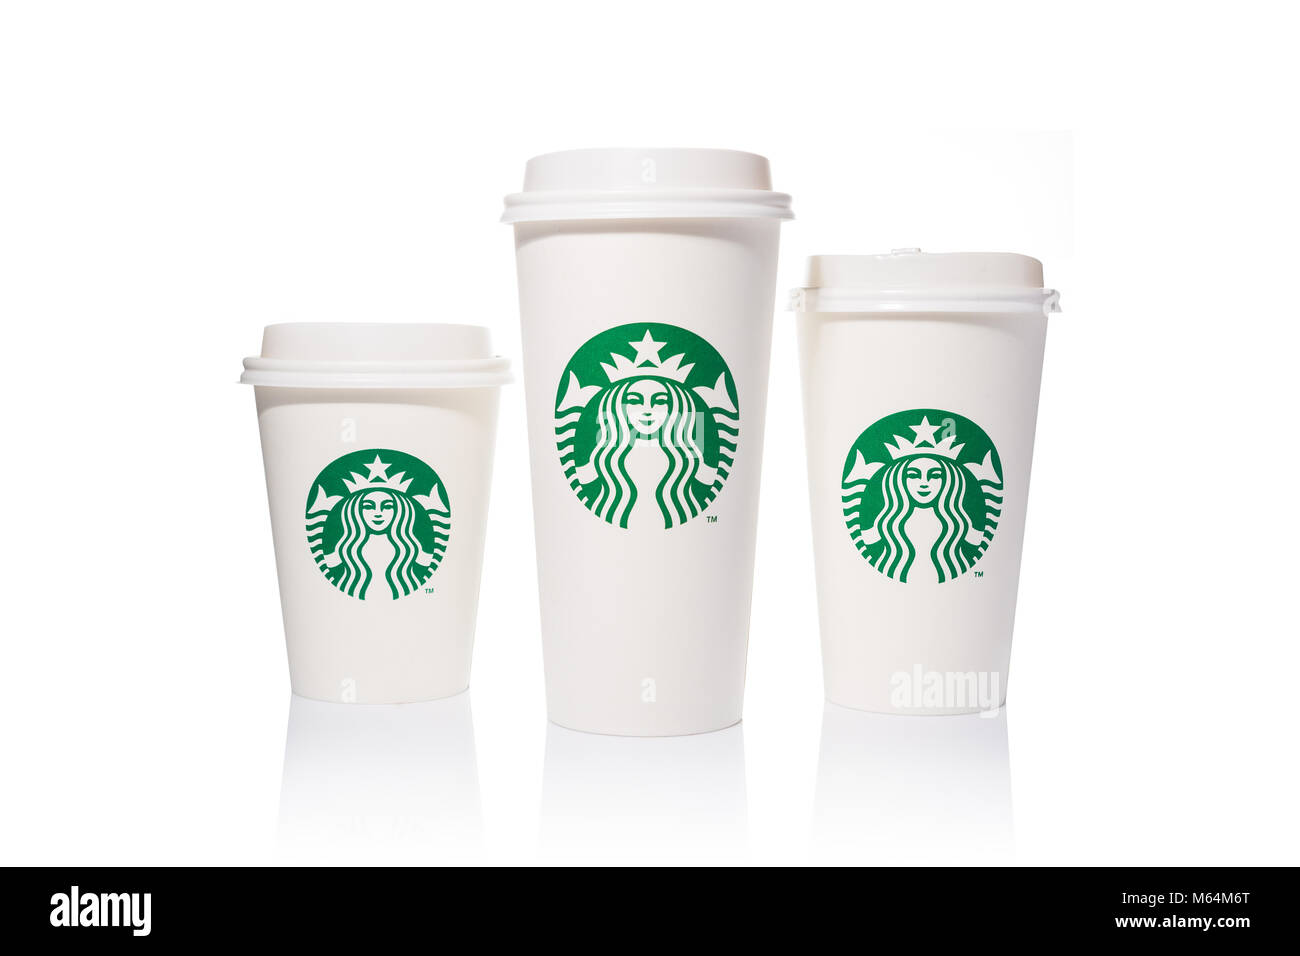 White Paper Starbucks Coffee Cups In 3 Sizes On White